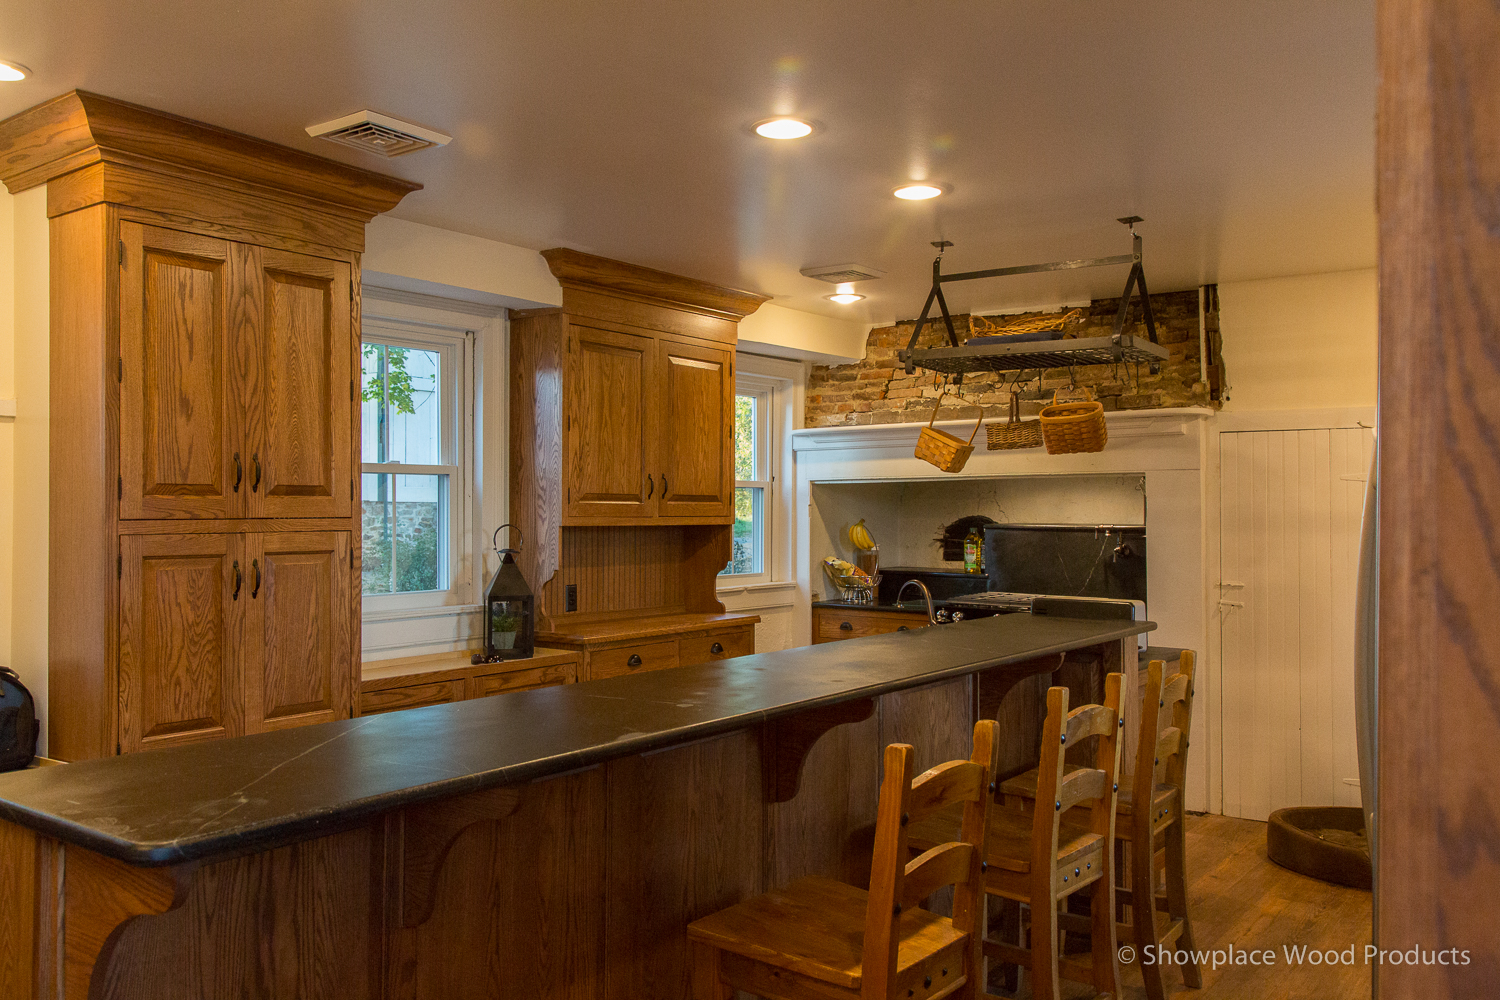 Tag: Kitchen Cabinets. Historic Home Renovation Creates Timeless Showplace